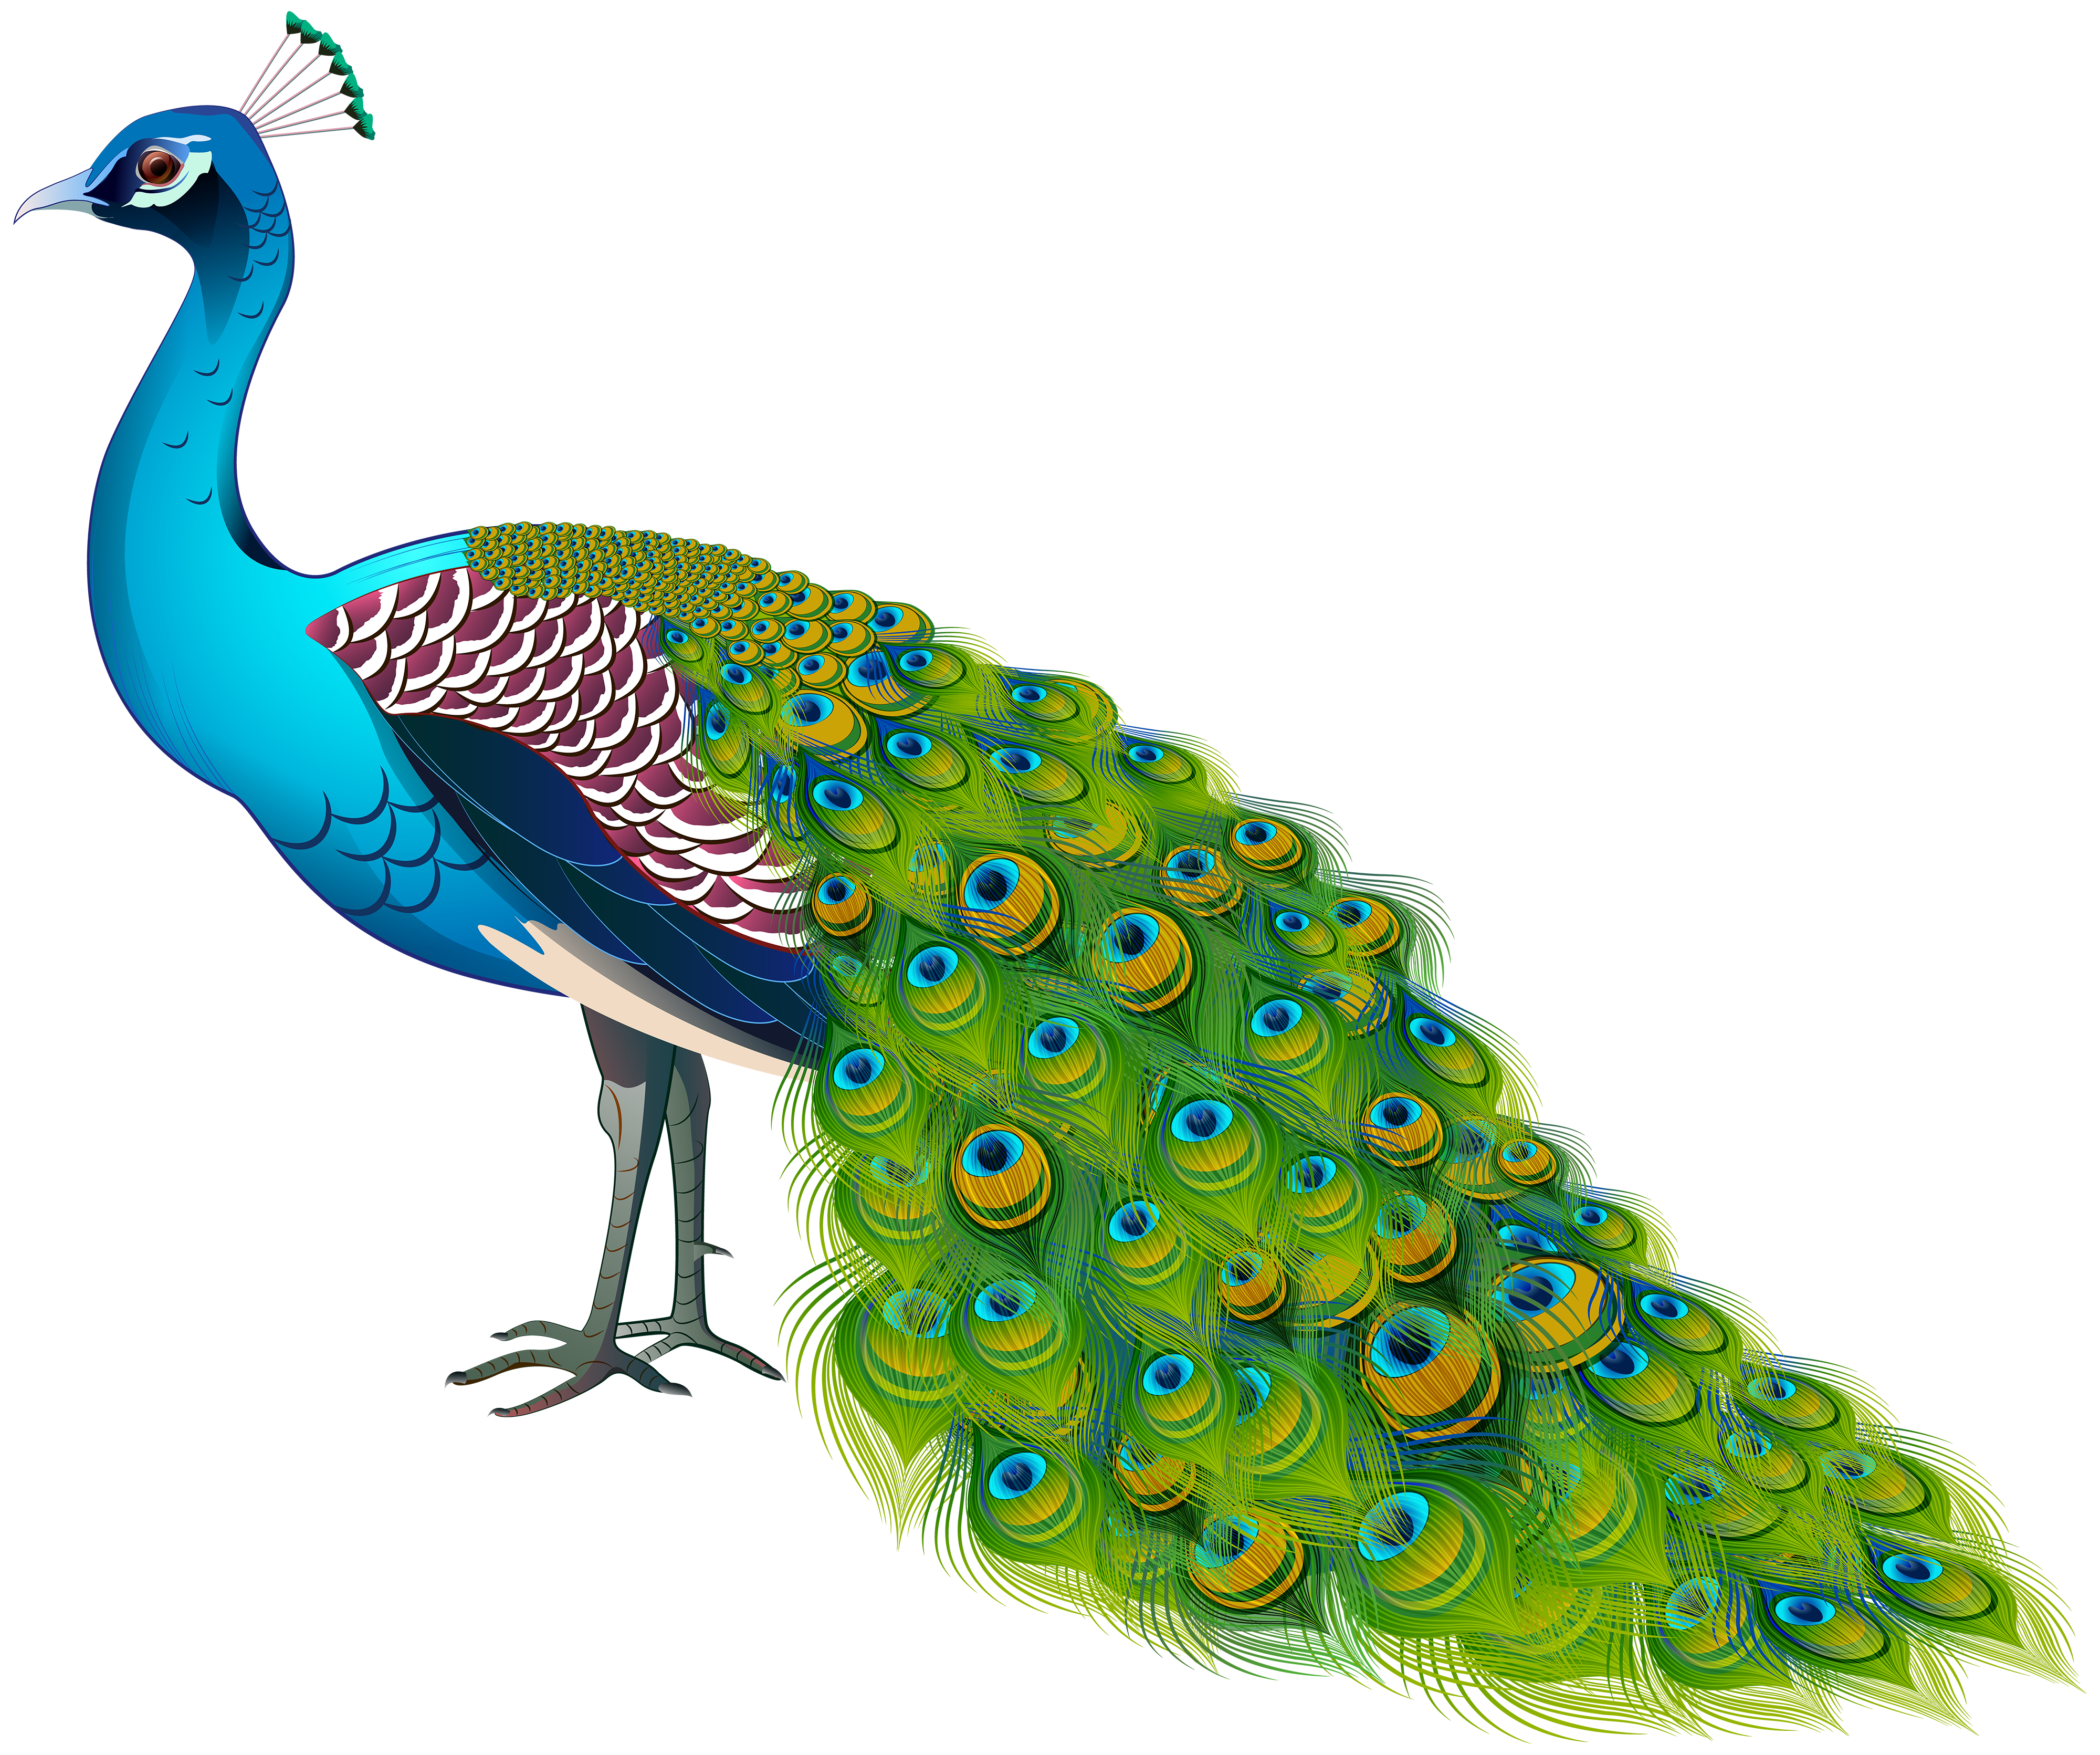 peacock transparent image gallery yopriceville high quality images and transparent png free clipart peacock images peacock pictures peacock peacock images peacock pictures